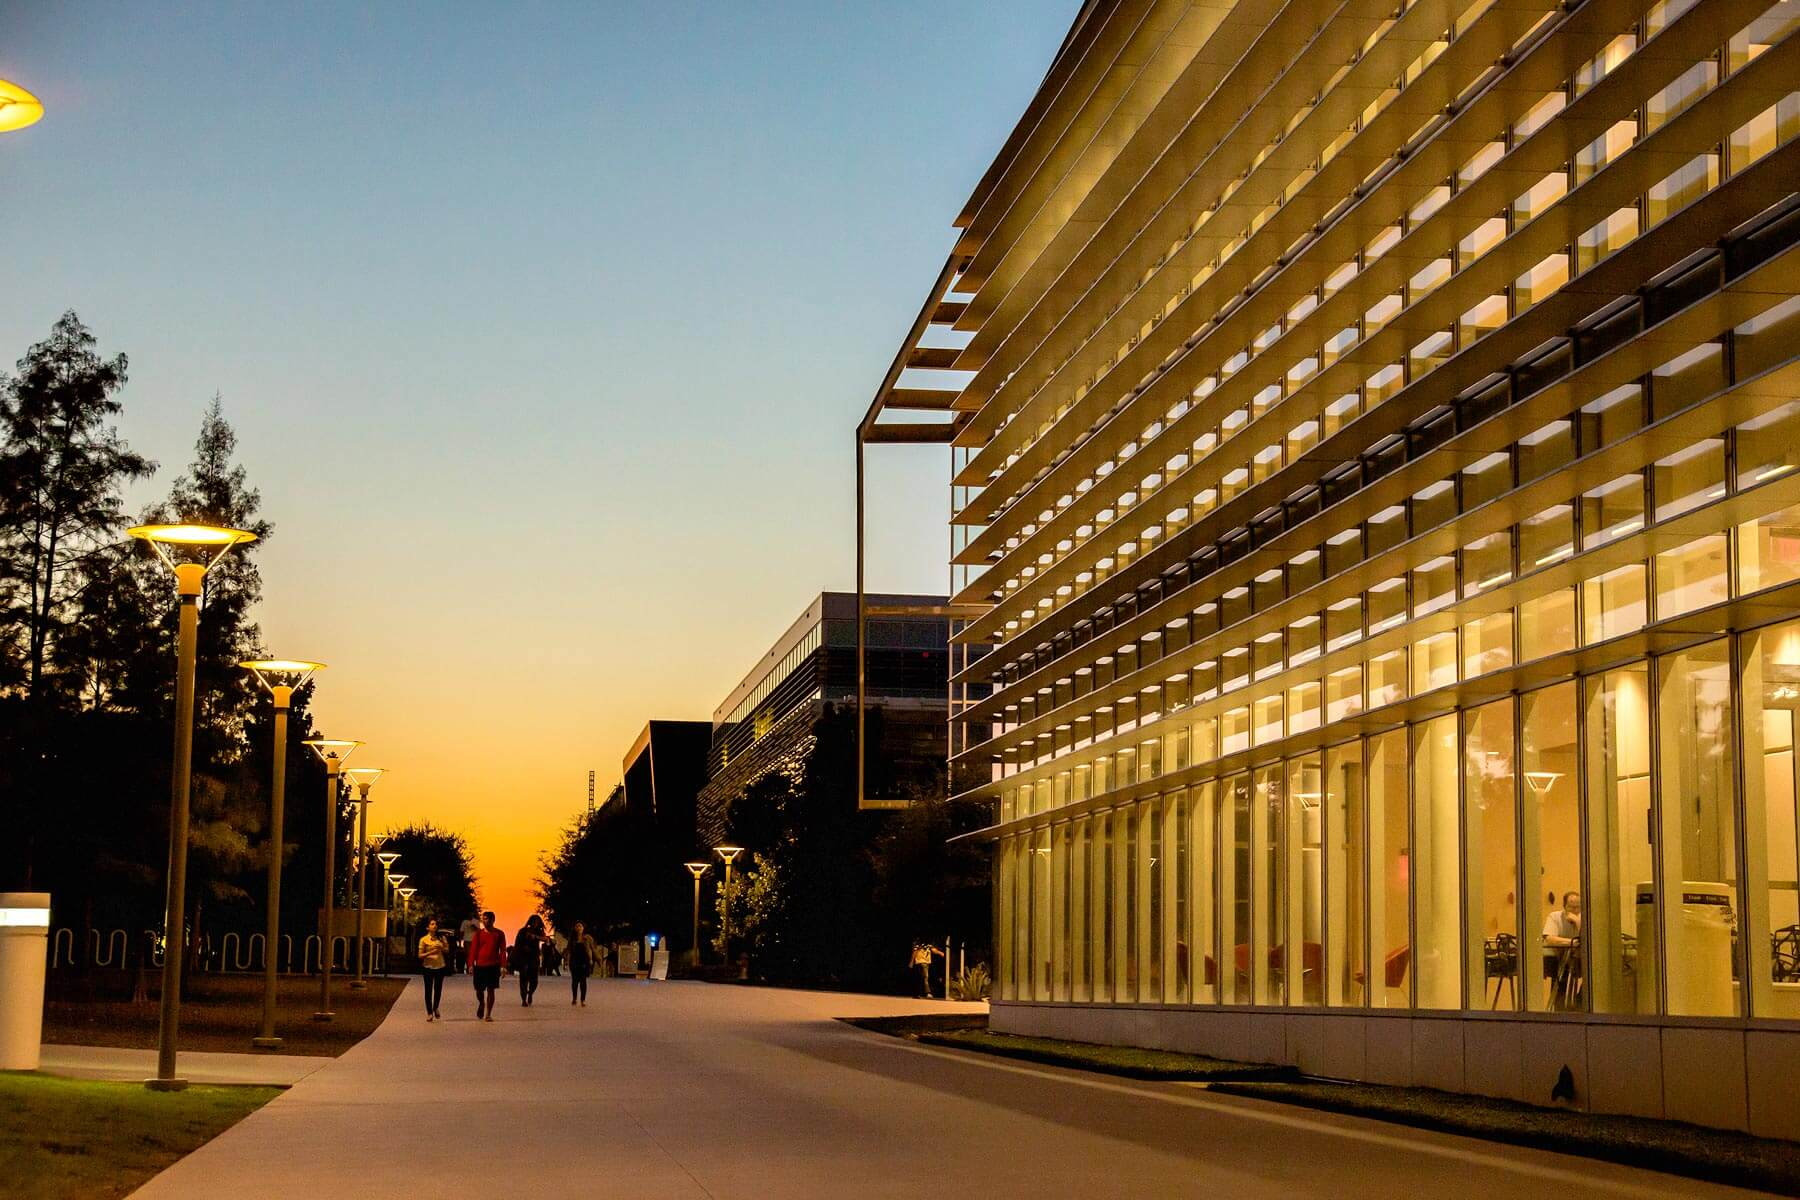 ATEC campus building at sunset, slide 5